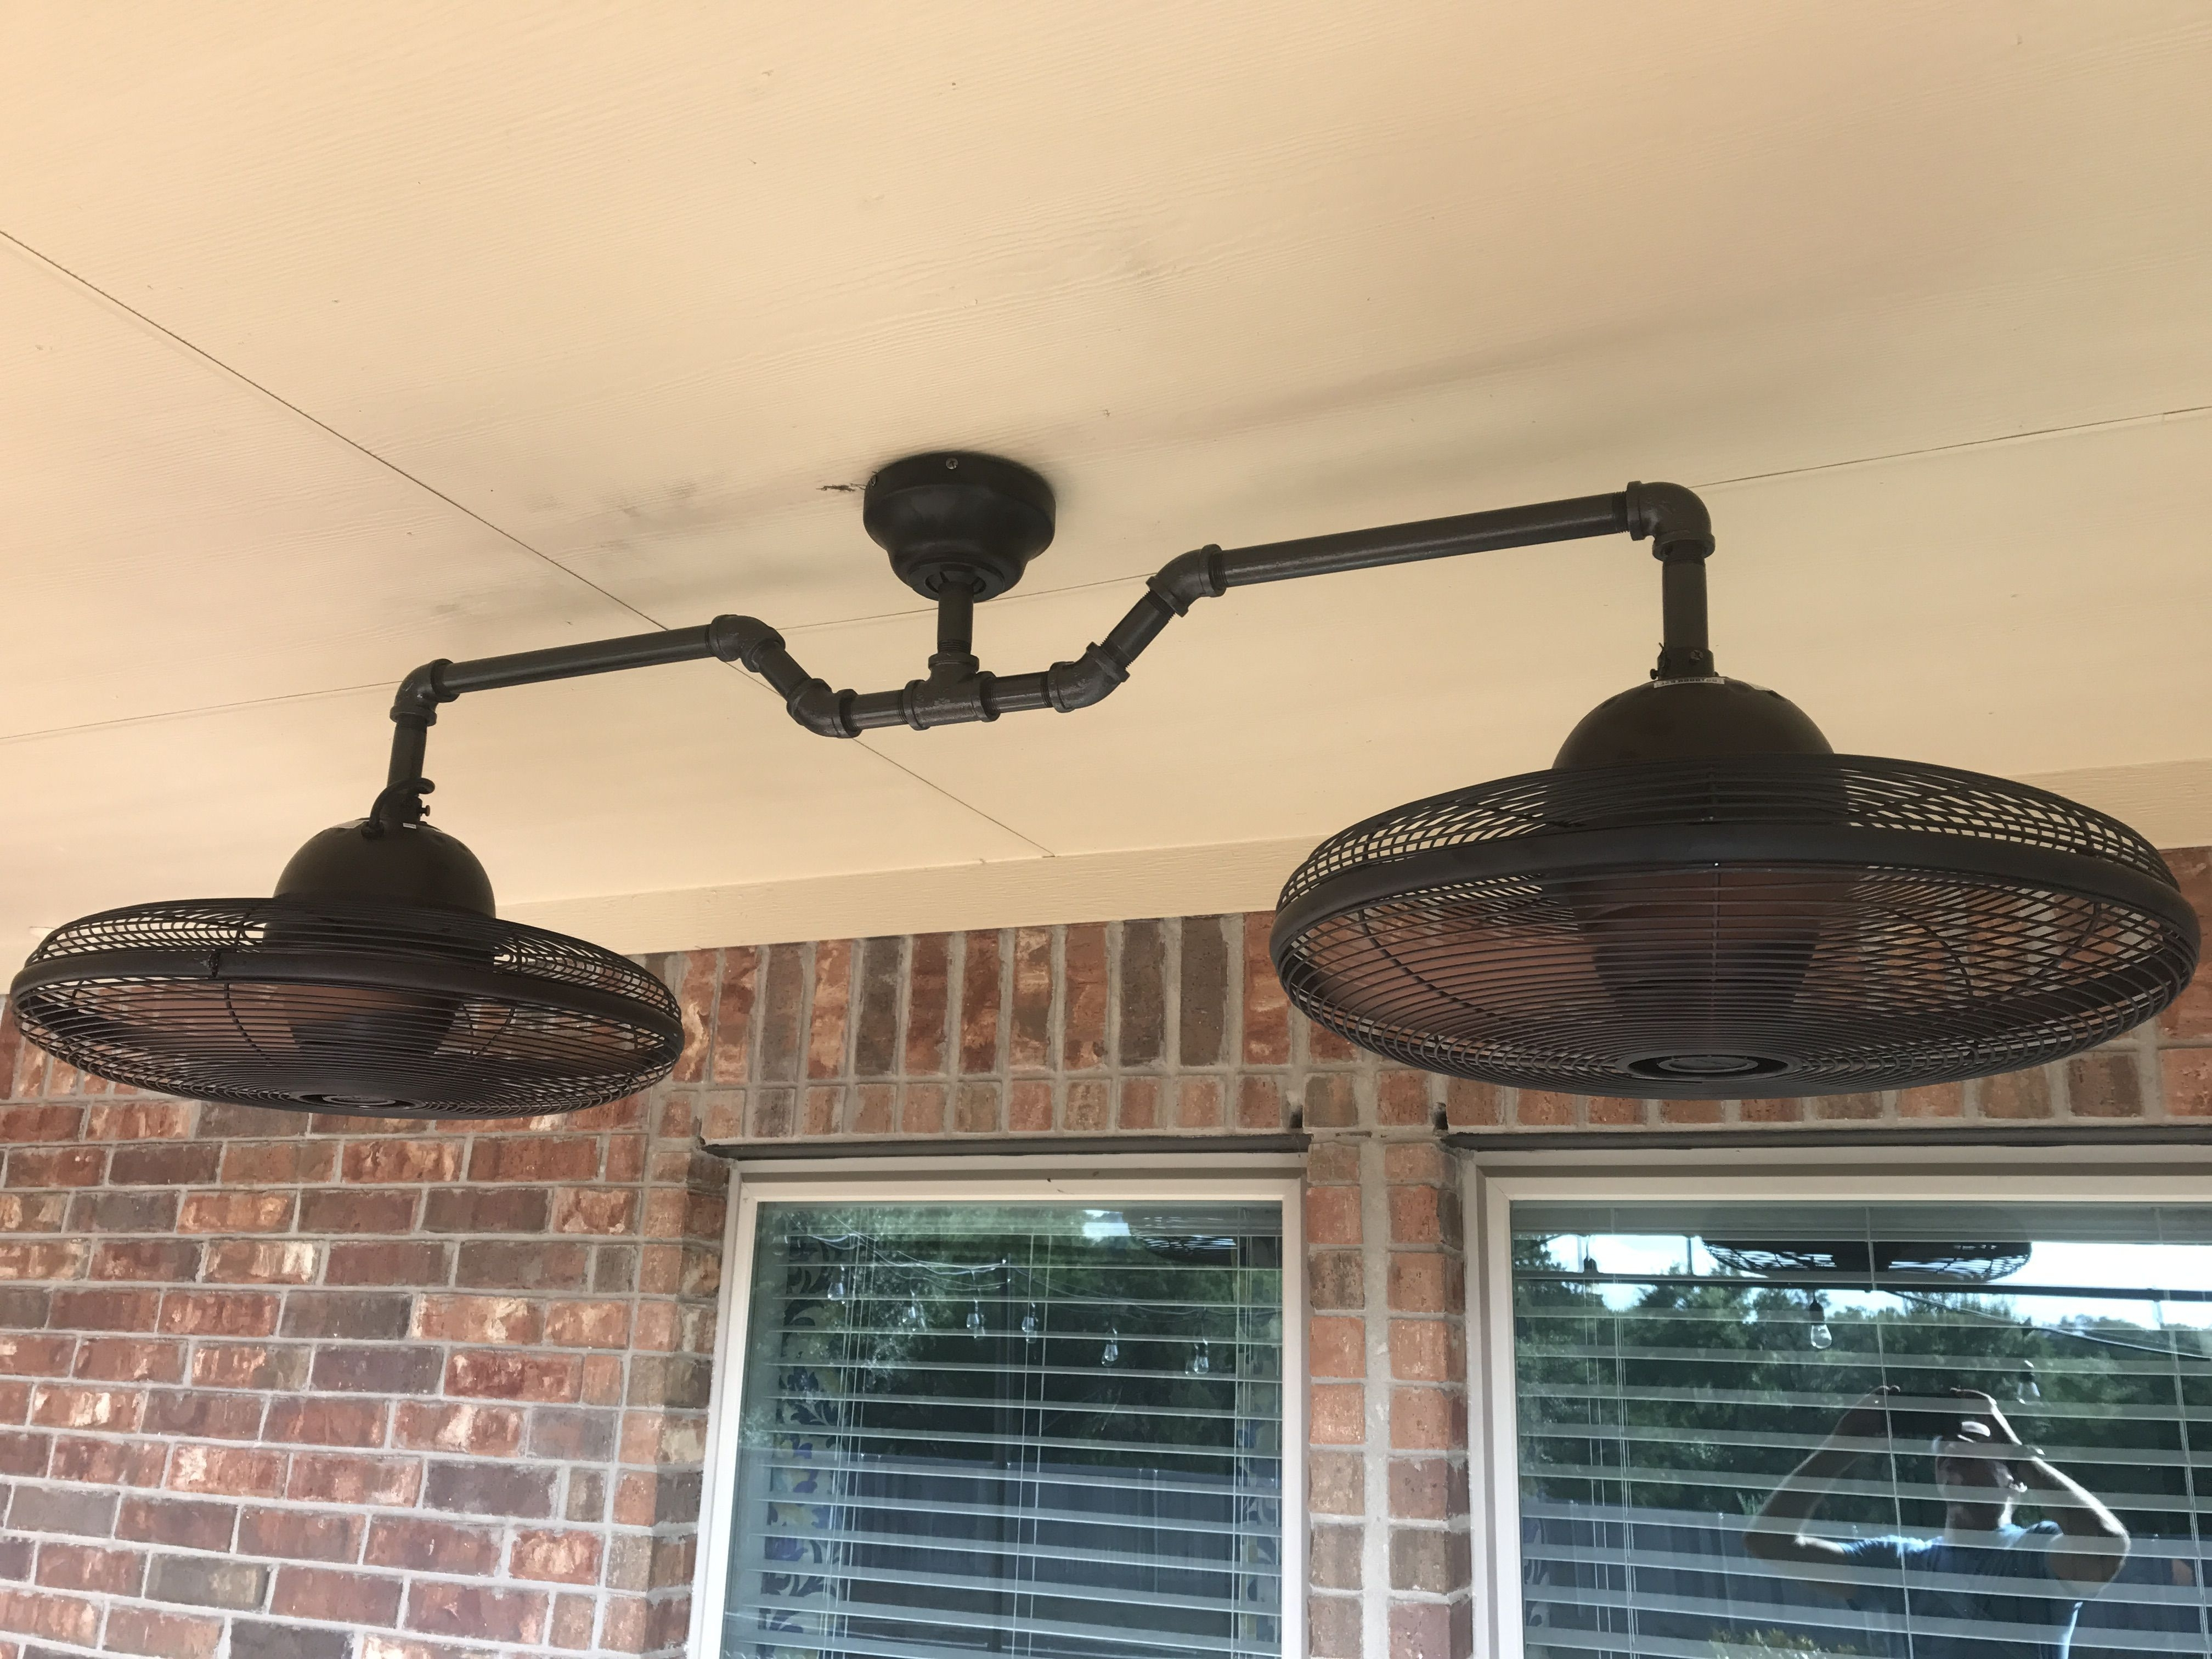 Vertical Outdoor Ceiling Fans Regarding Preferred Diy Dual Ceiling Fan Made From Black Iron Pipe And Lowes Allen + (View 17 of 20)